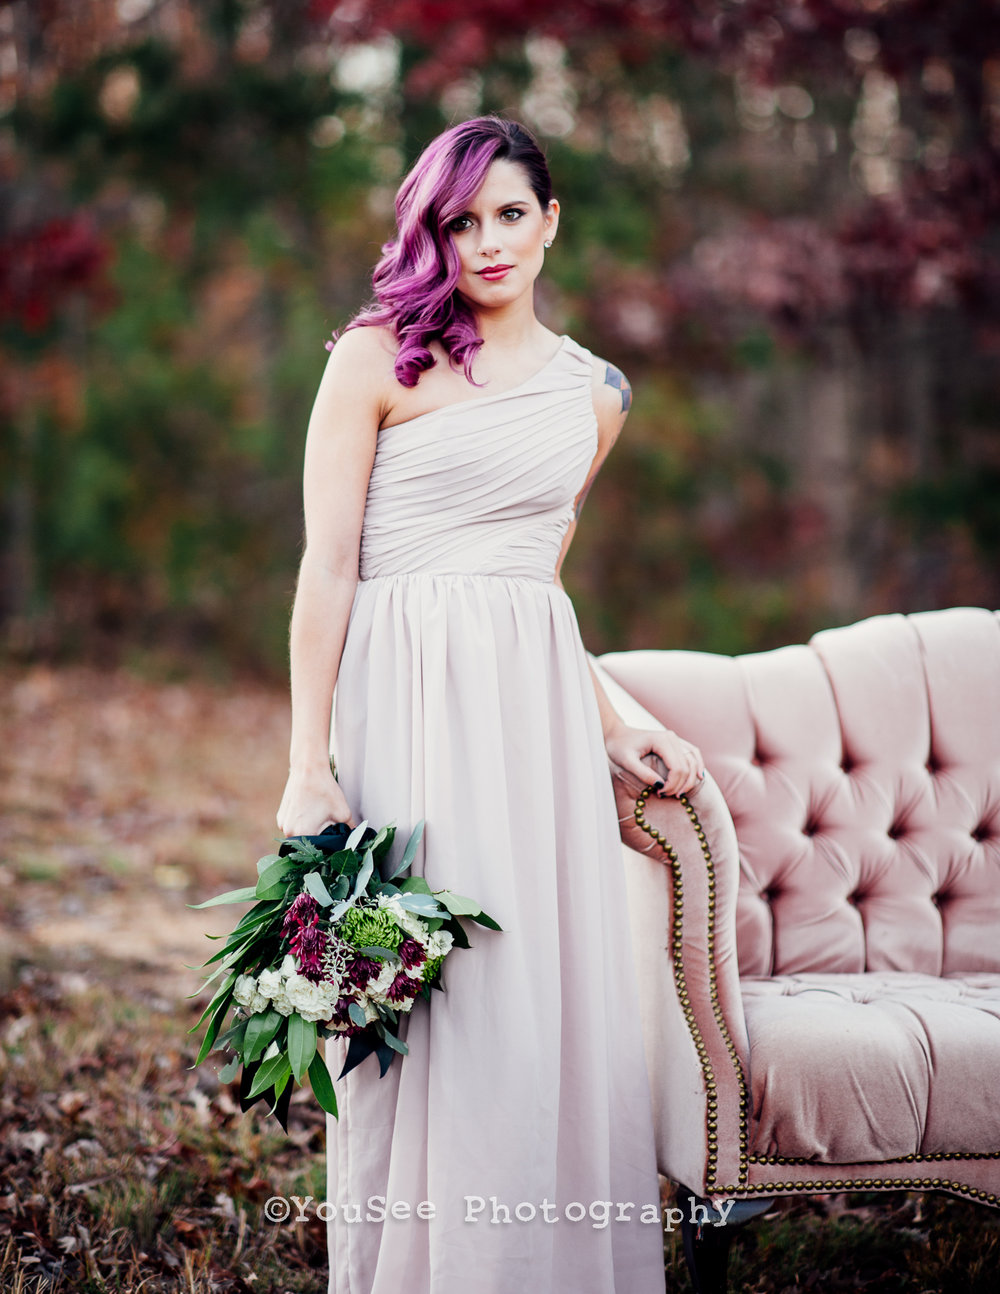 wedding_styledshoot_gothic_pursuit (6)